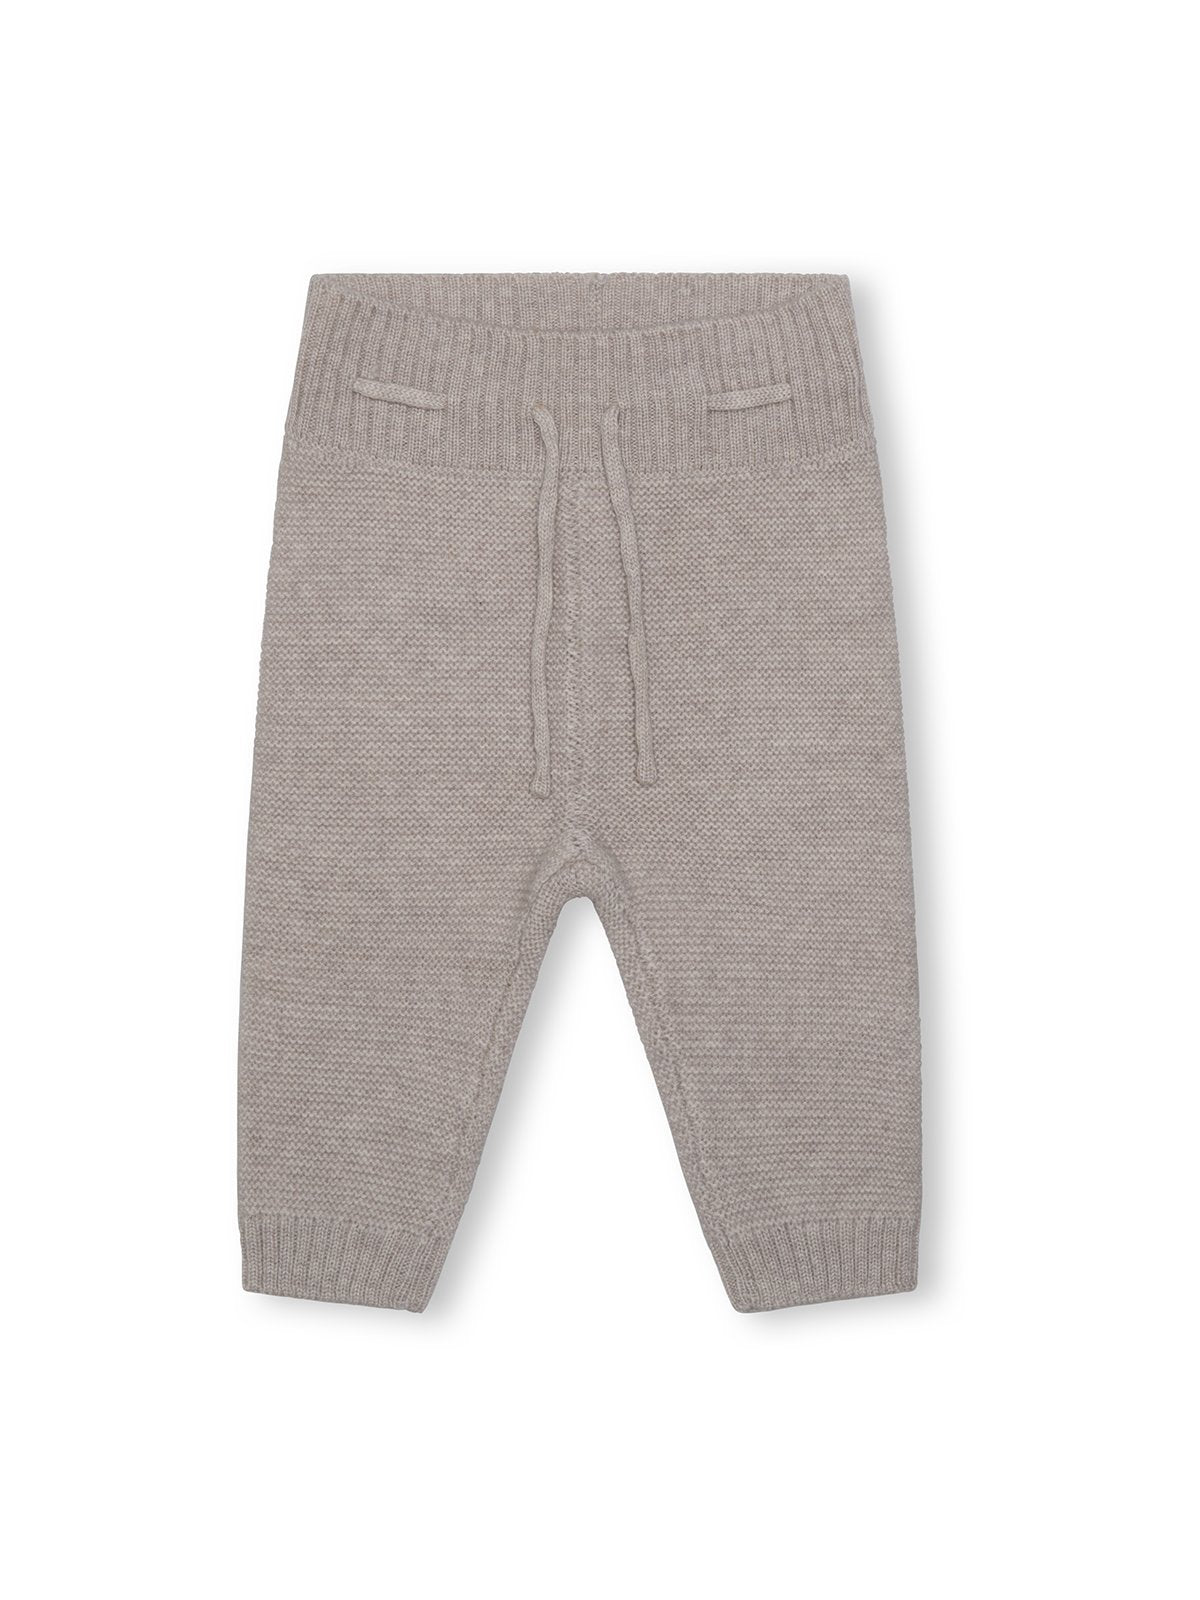 Leslie merinowool pants - Light Brown Melange